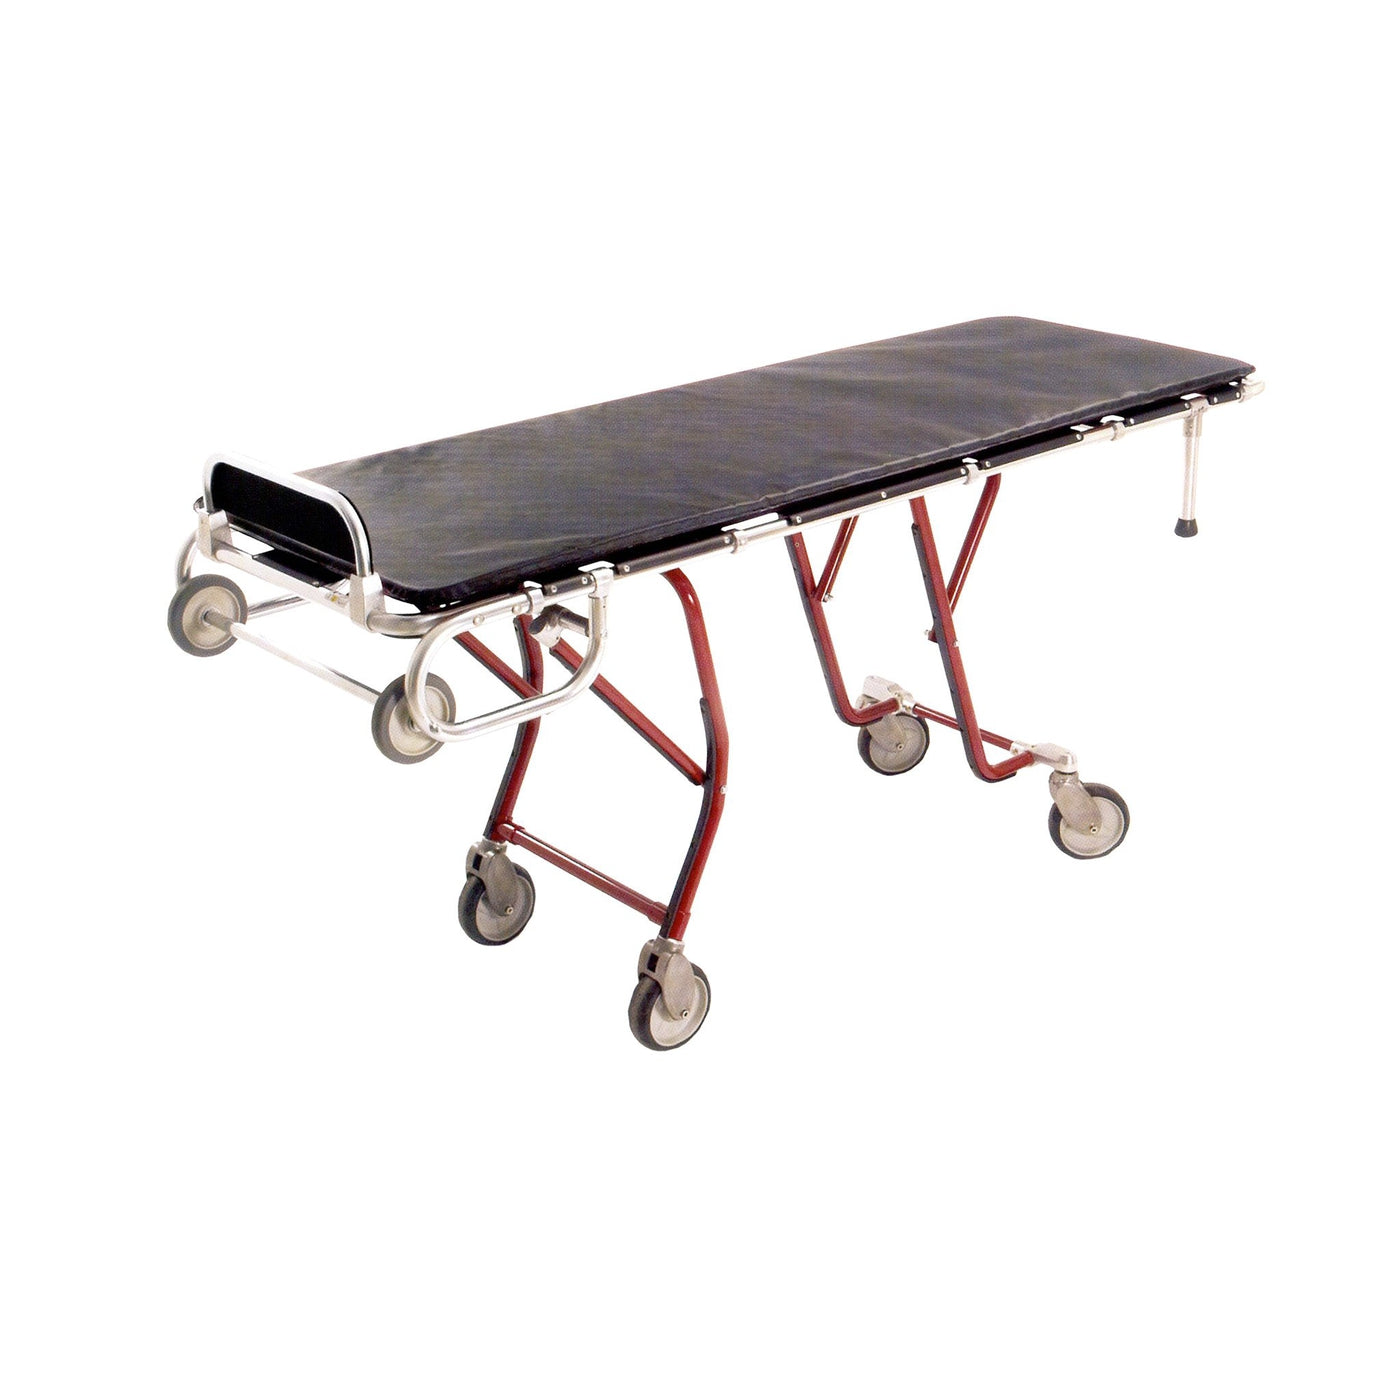 Bariatric Mortuary Cot-Body Transporter-Mortech Manufacturing Company Inc. Quality Stainless Steel Autopsy, Morgue, Funeral Home, Necropsy, Veterinary / Anatomy, Dissection Equipment and Accessories